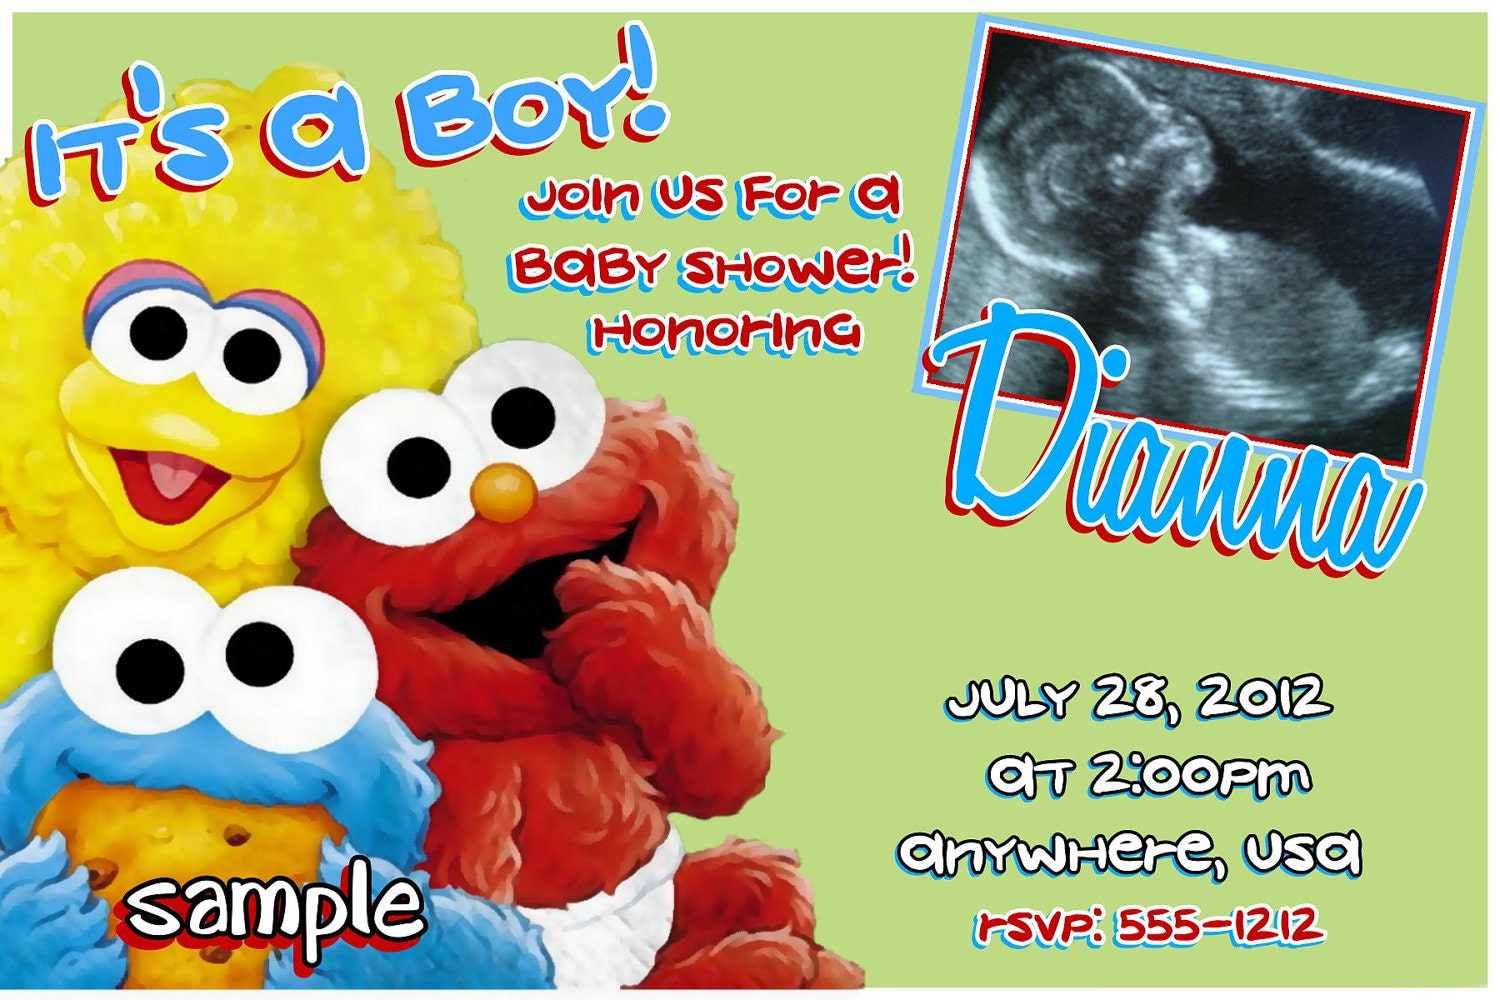 Sesame street baby shower invitations free shipping - Sesame street baby shower ...